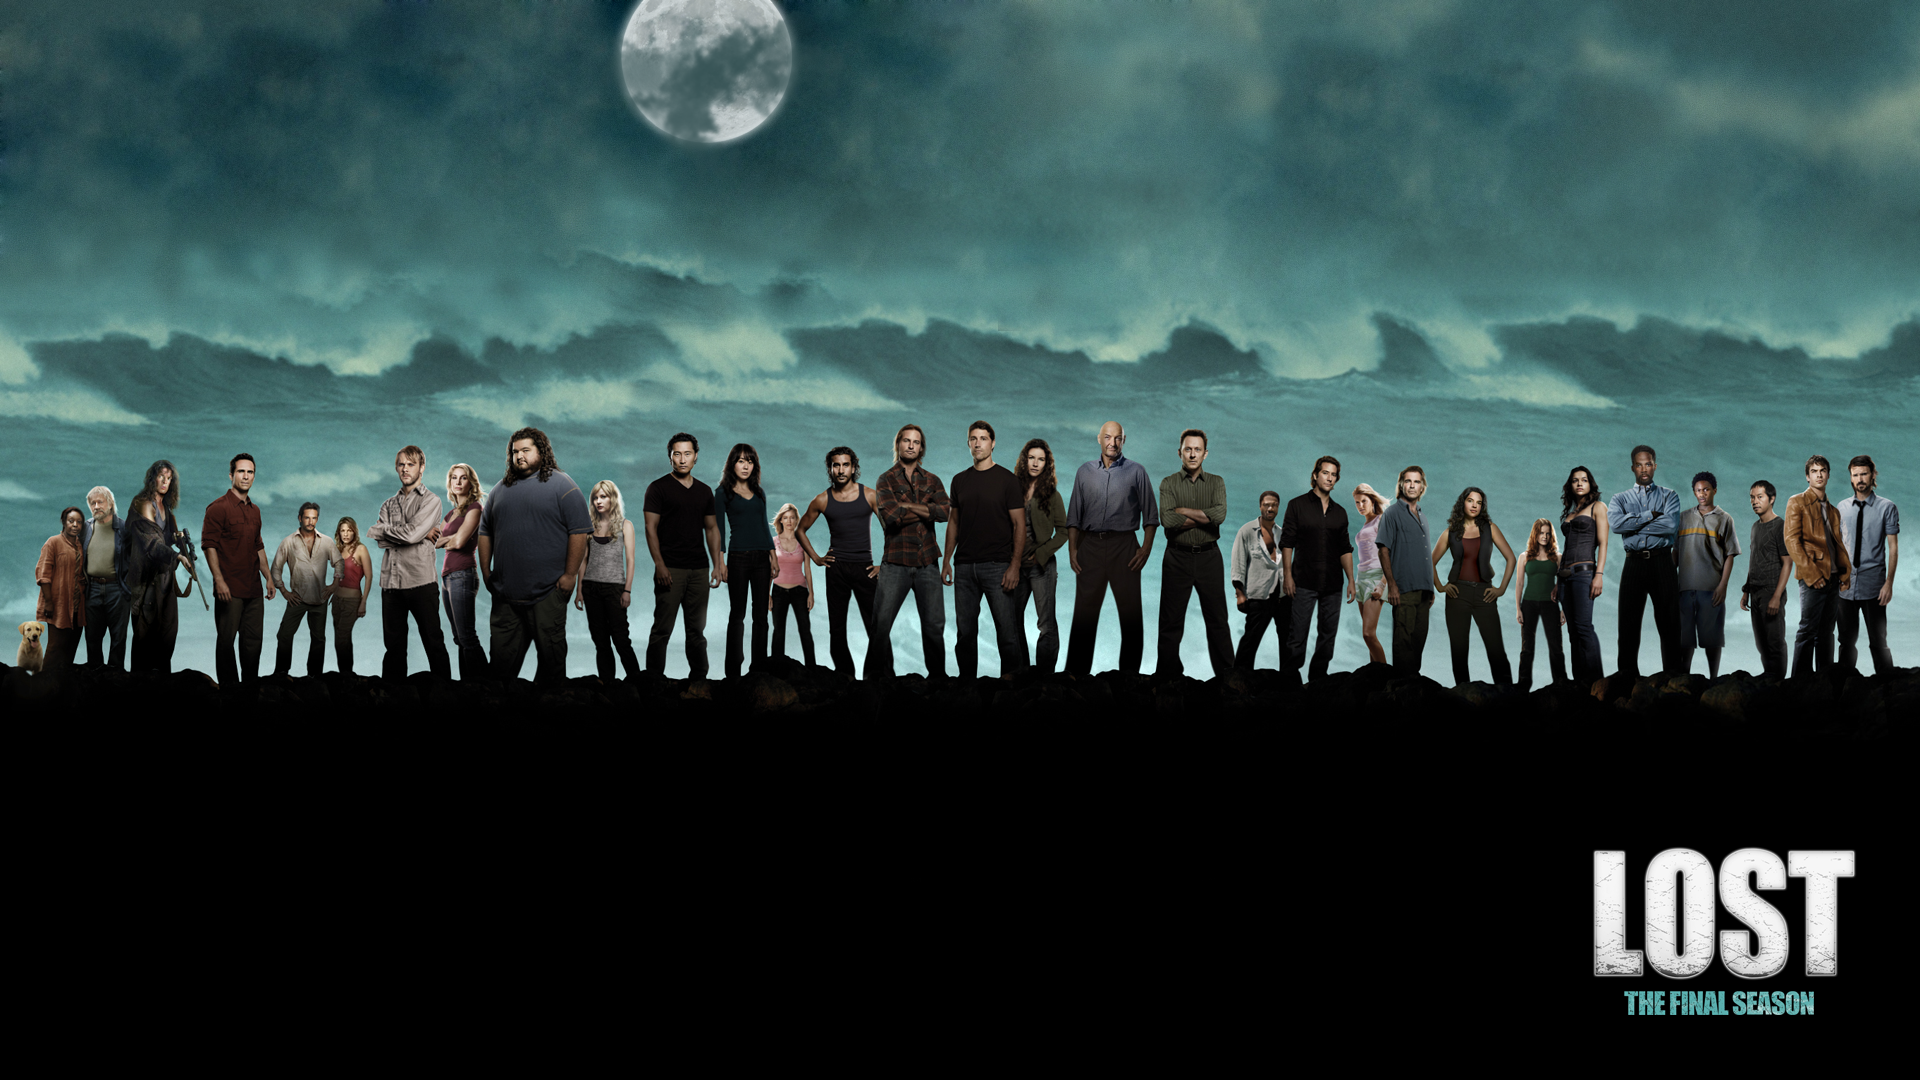 Lost Hd Wallpaper #32310 Hd Wallpapers Background ...